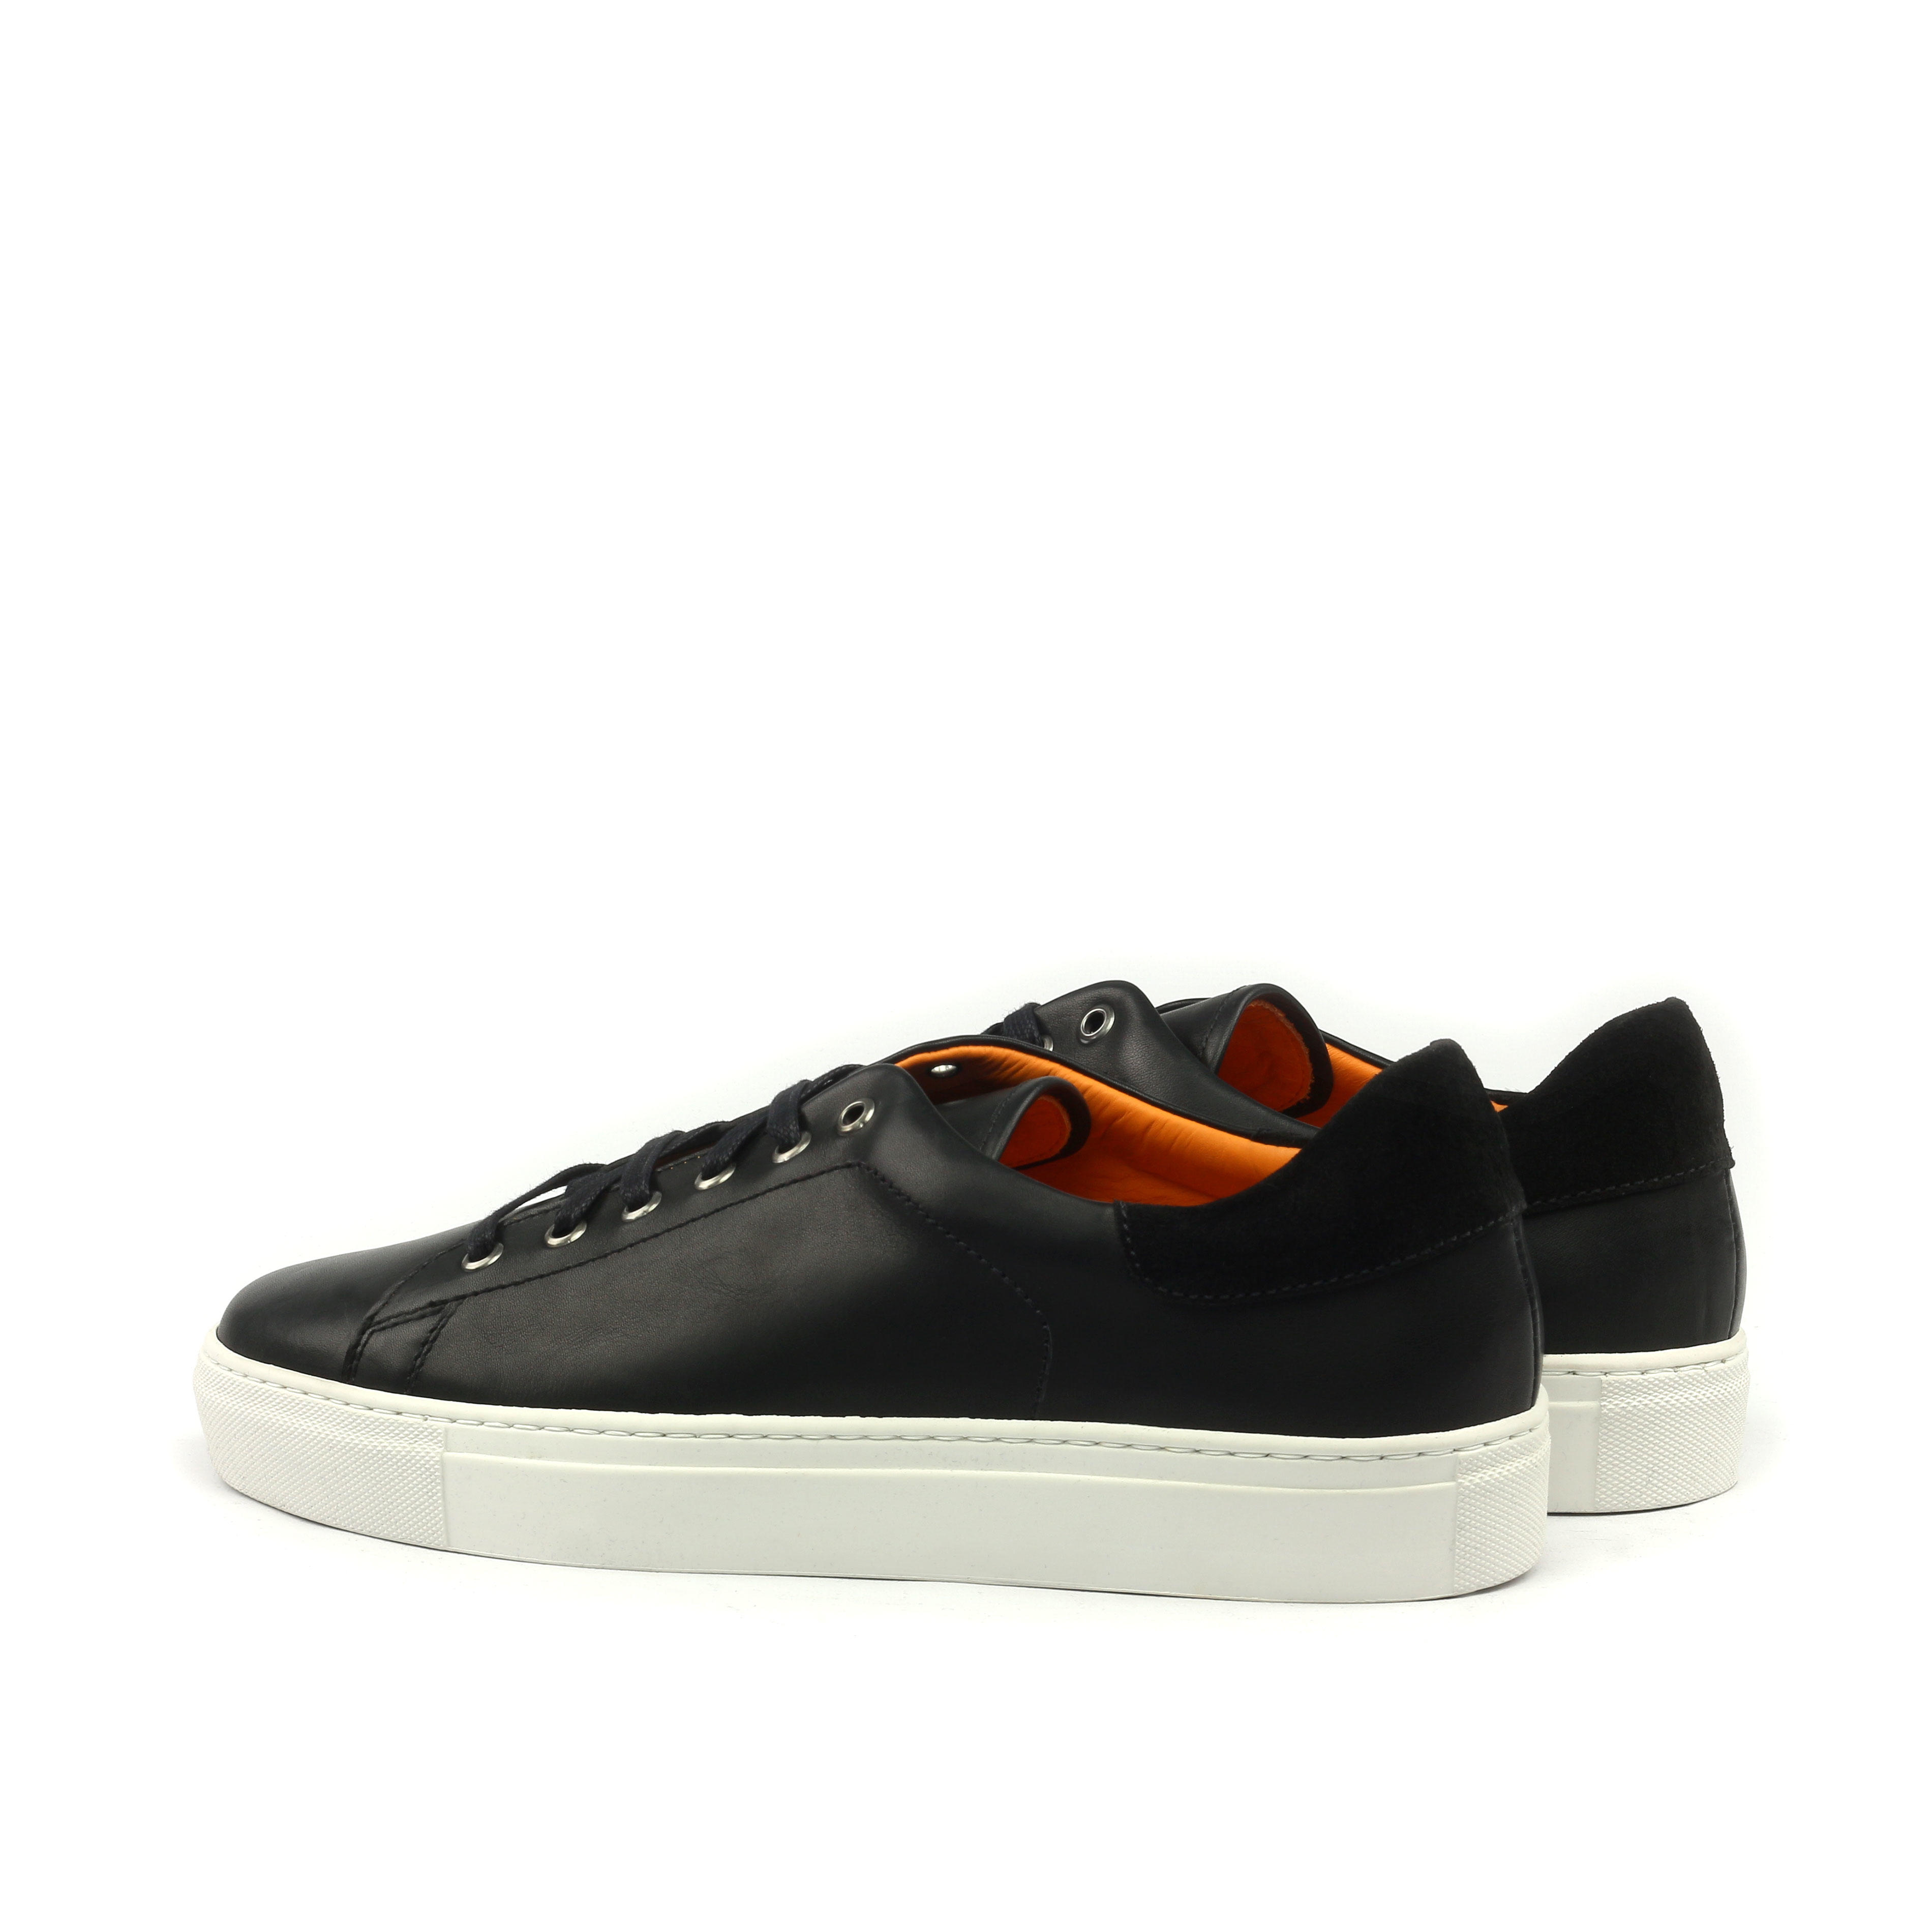 MANOR OF LONDON'The Perry' Painted Black Calfskin Tennis Trainer Luxury Custom Initials Monogrammed Back Side View